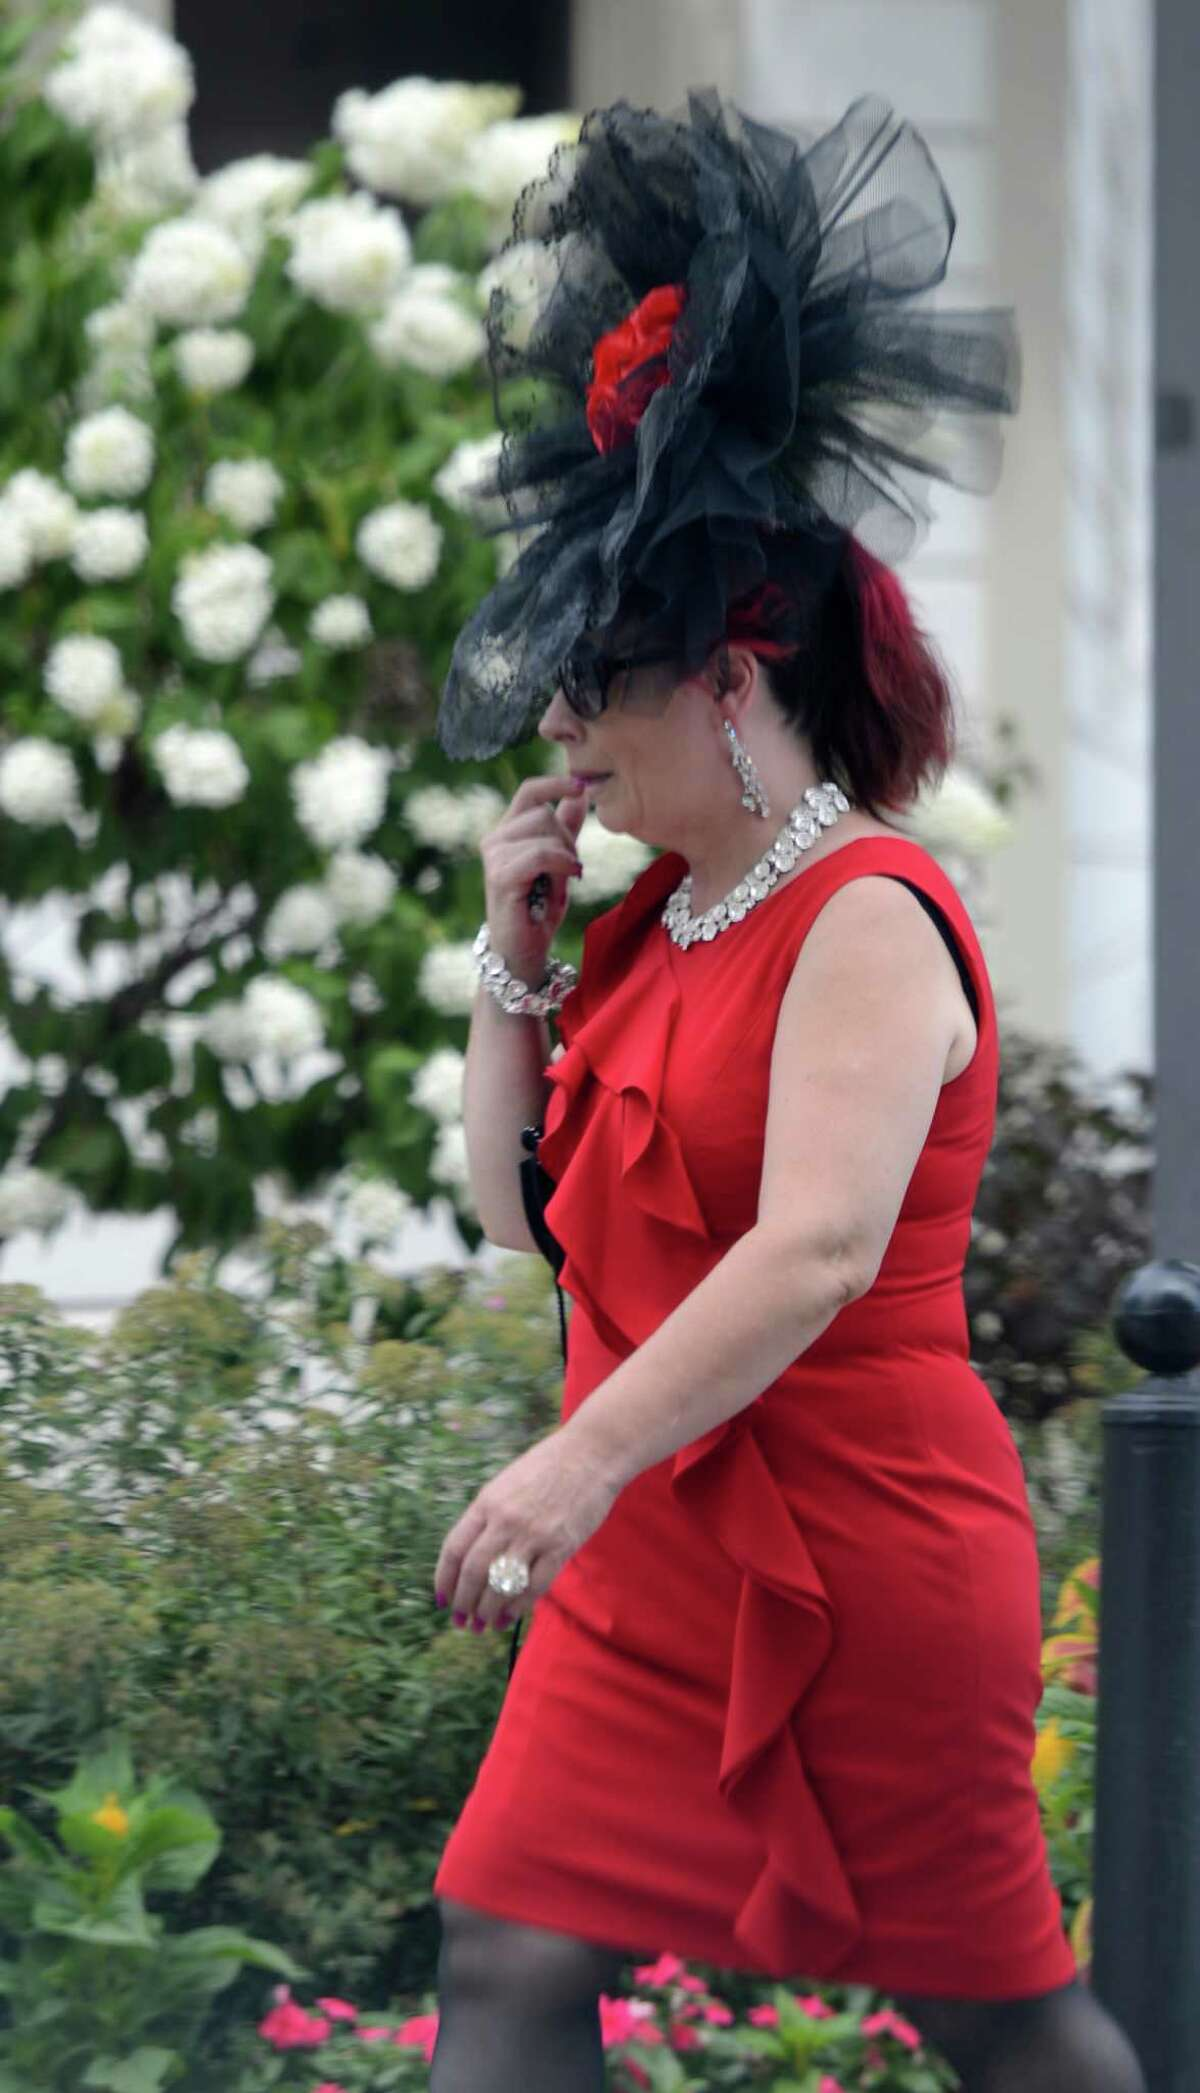 Interesting hats are abundant on Travers Day at the Saratoga Race Course in Saratoga Springs, N.Y. Aug. 25, 2012. (Skip Dickstein/Times Union)